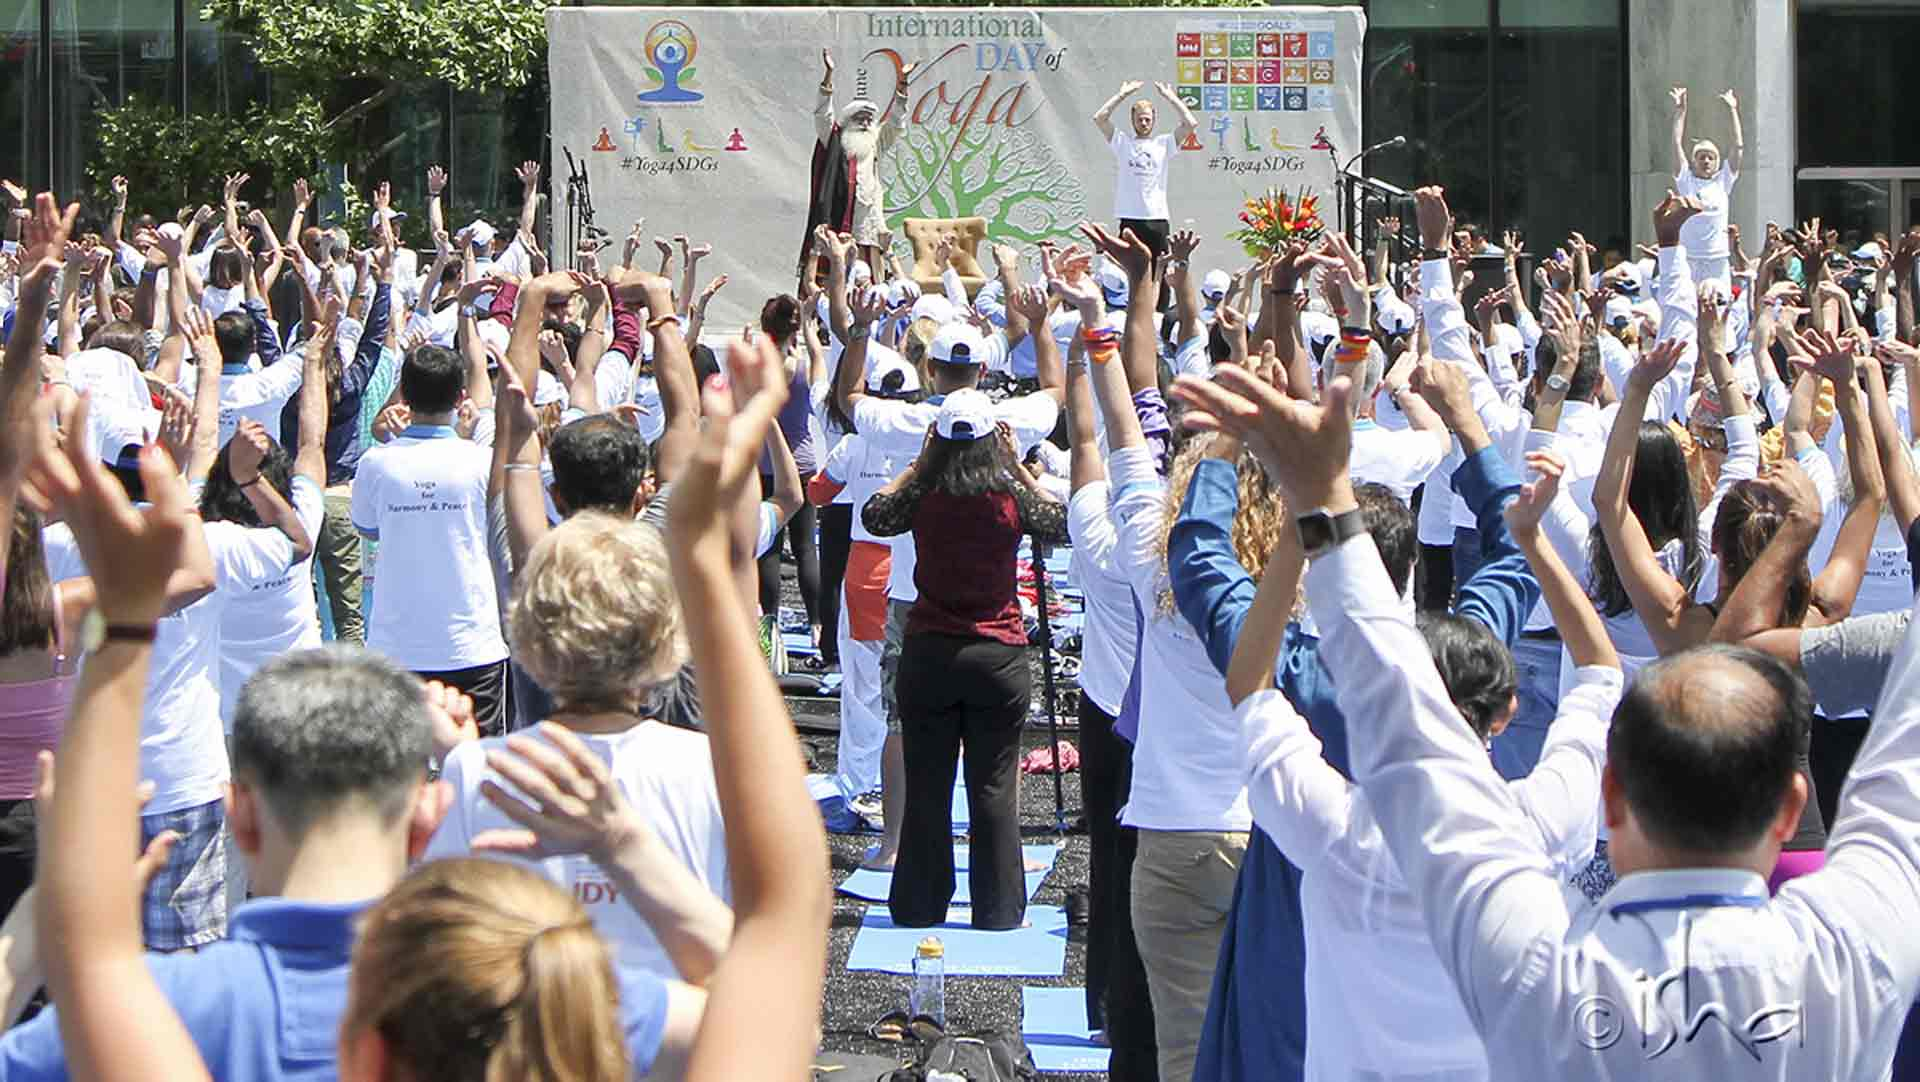 Yoga Session with Sadhguru at the United Nations on 21 June 2016